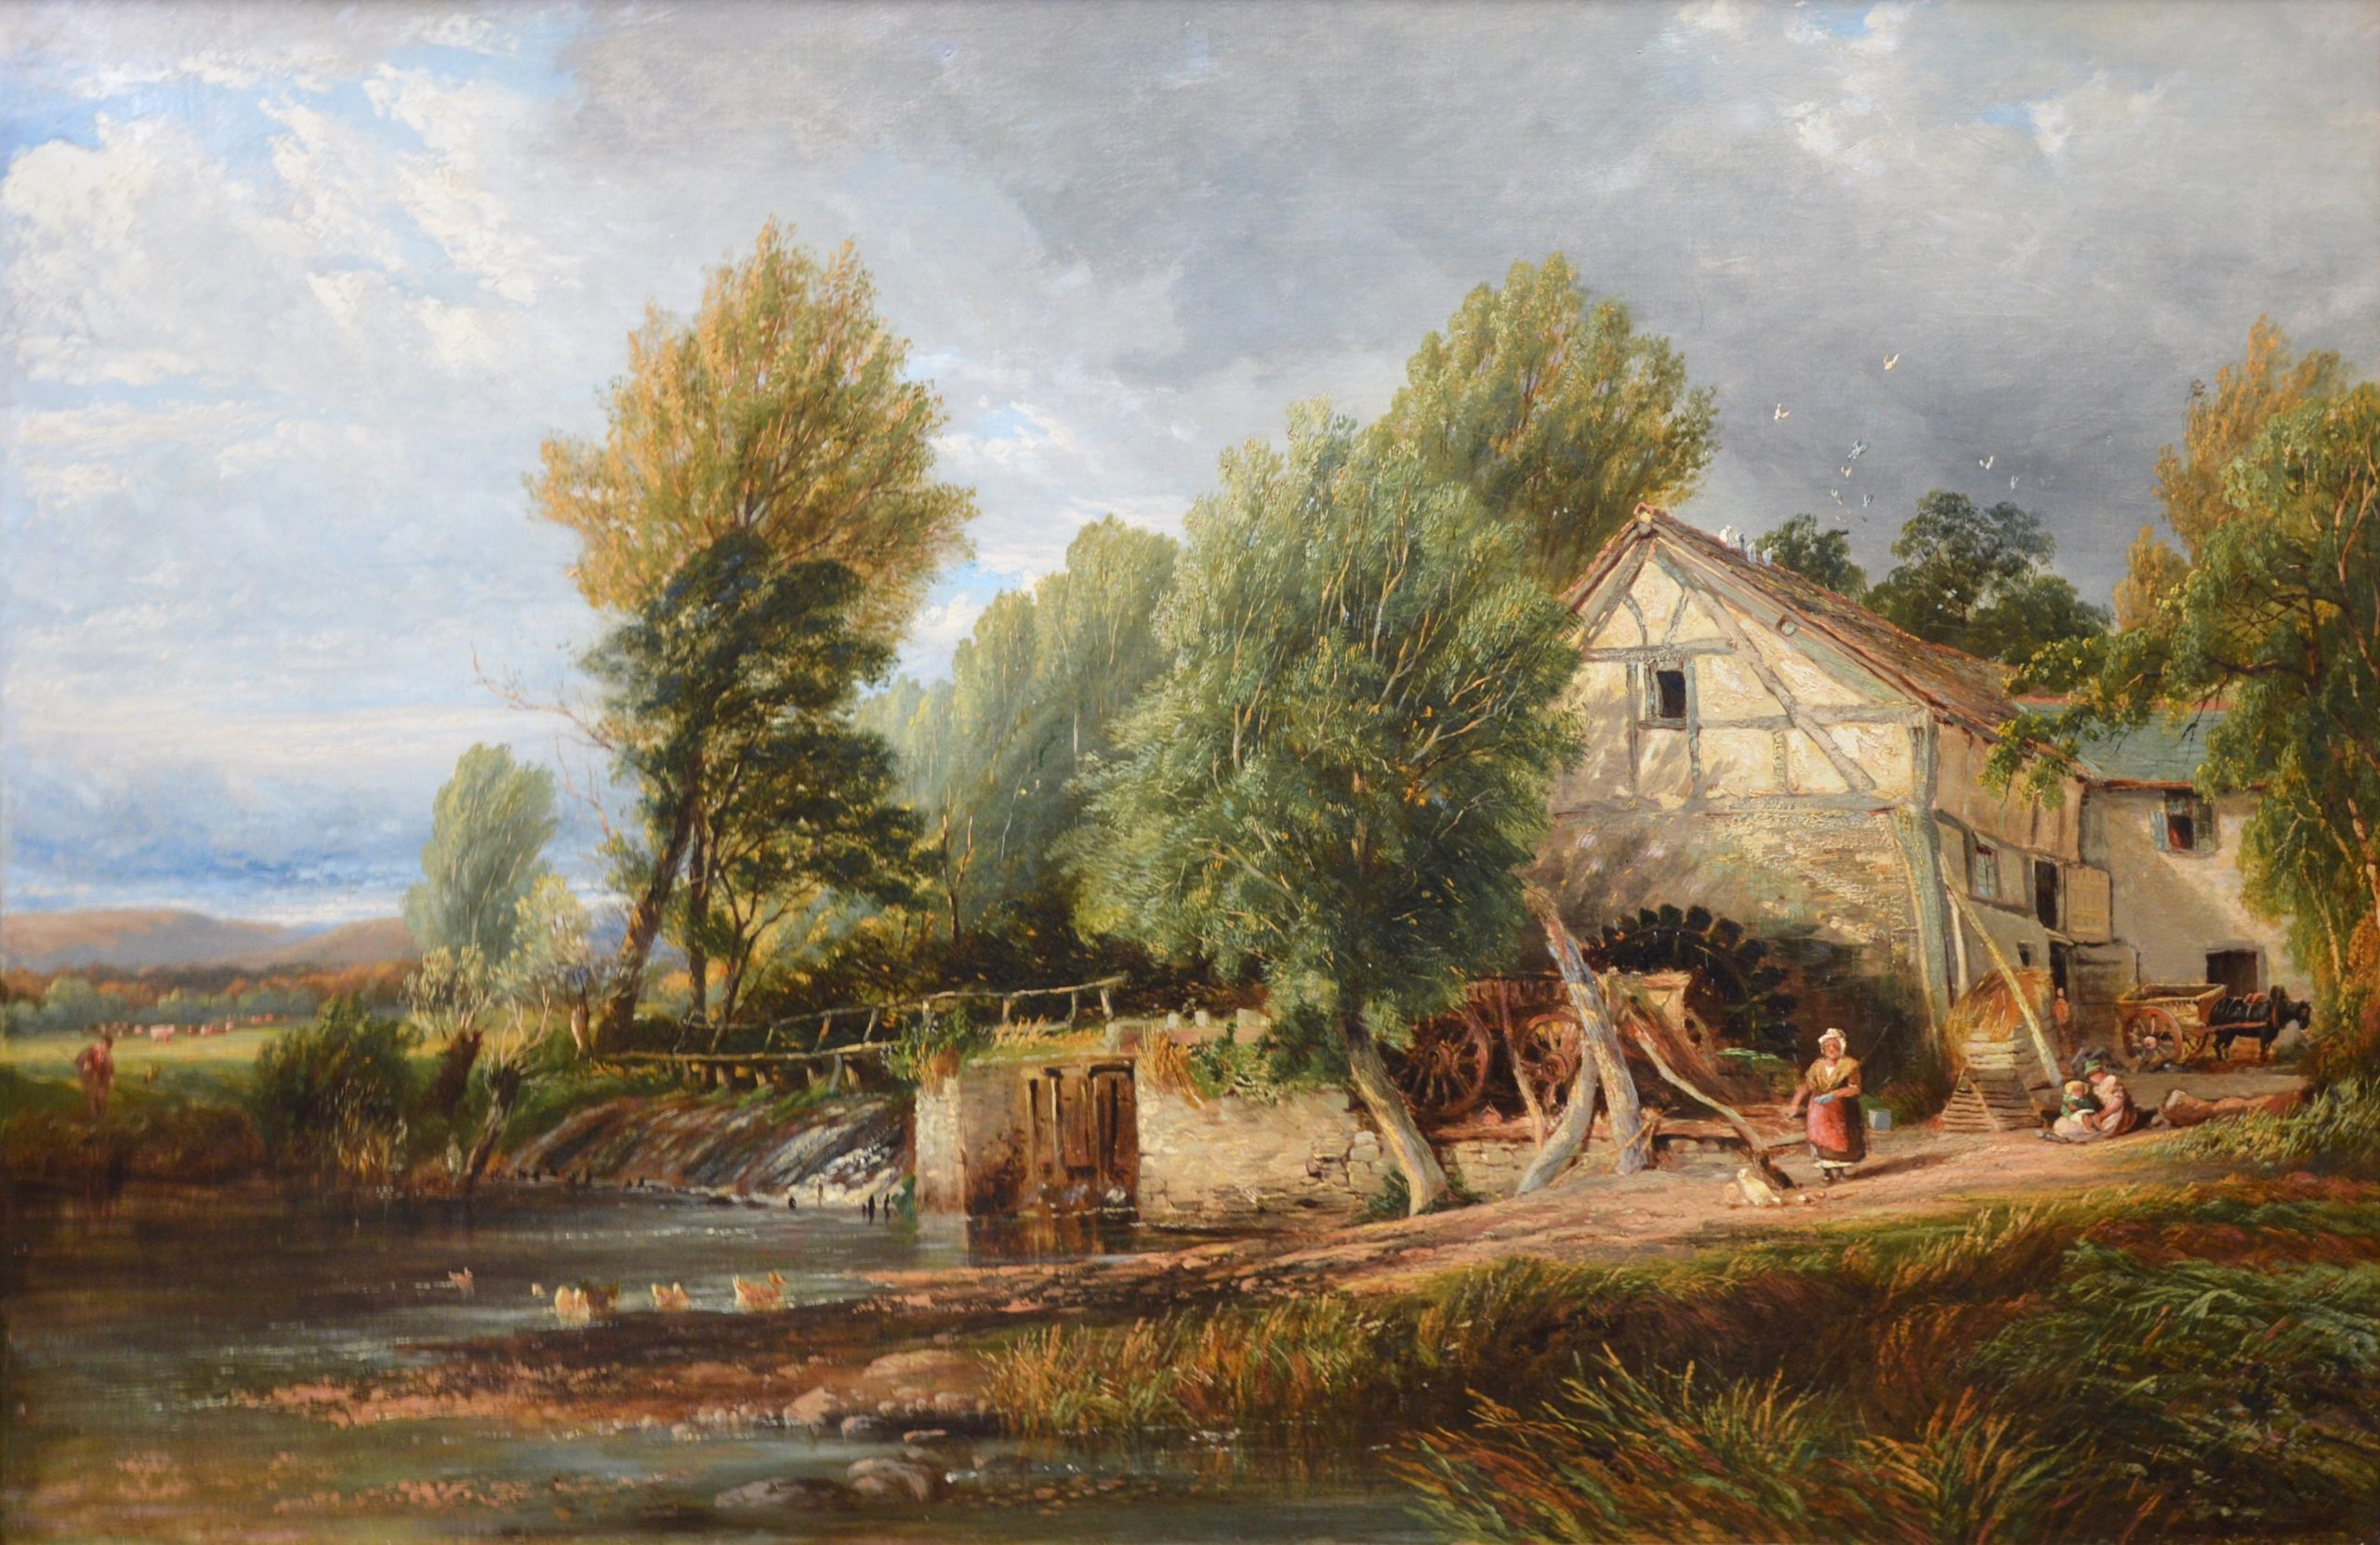 The Mill Stream - 19th Century English Landscape Oil Painting Image